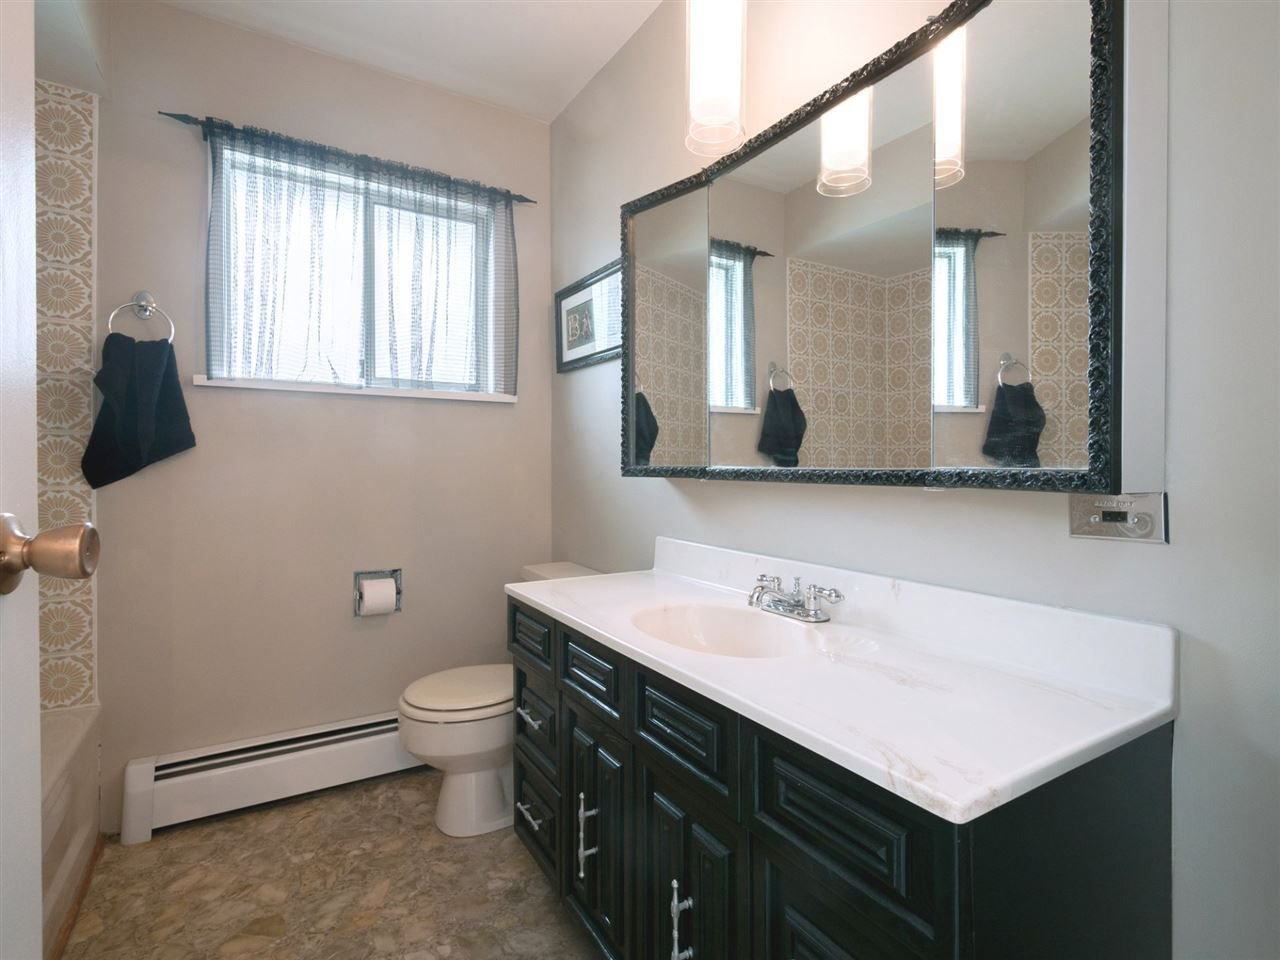 Photo 17: Photos: 14202 110 Avenue in Surrey: Bolivar Heights House for sale (North Surrey)  : MLS®# R2238014